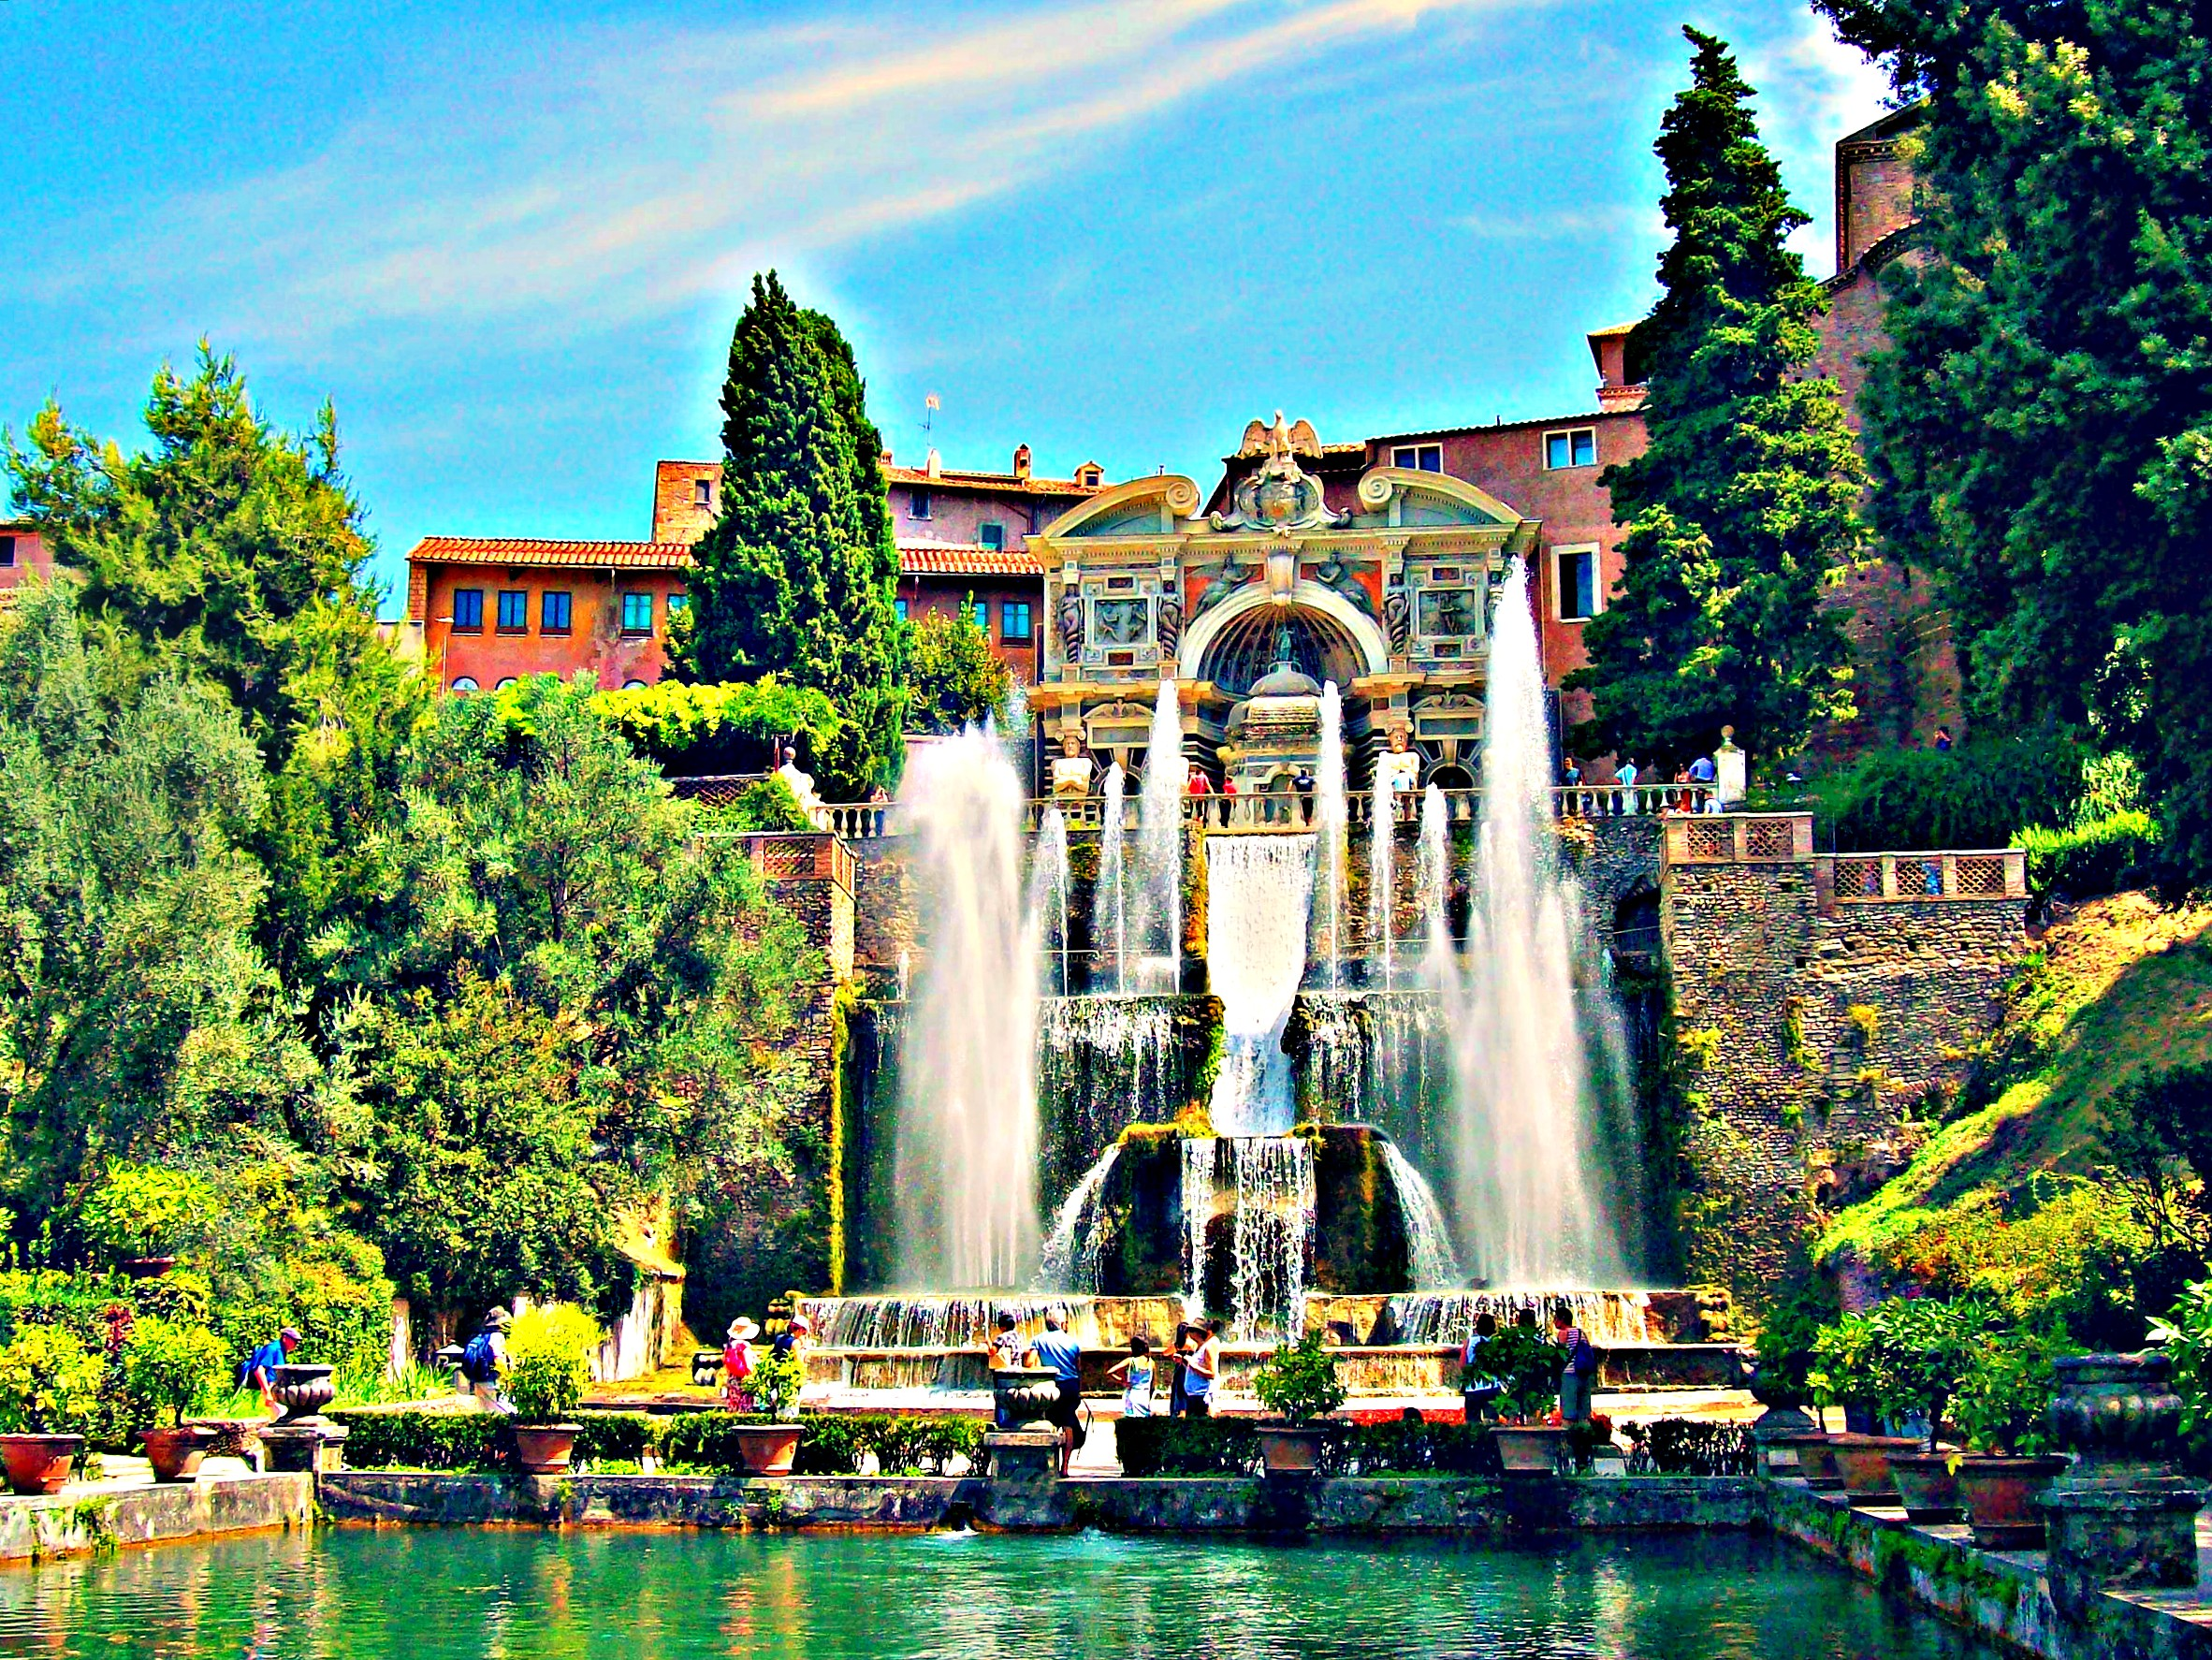 Tivoli Rome Weather Garden Villadeste Tivoli Italy Nature Hdr Colorful